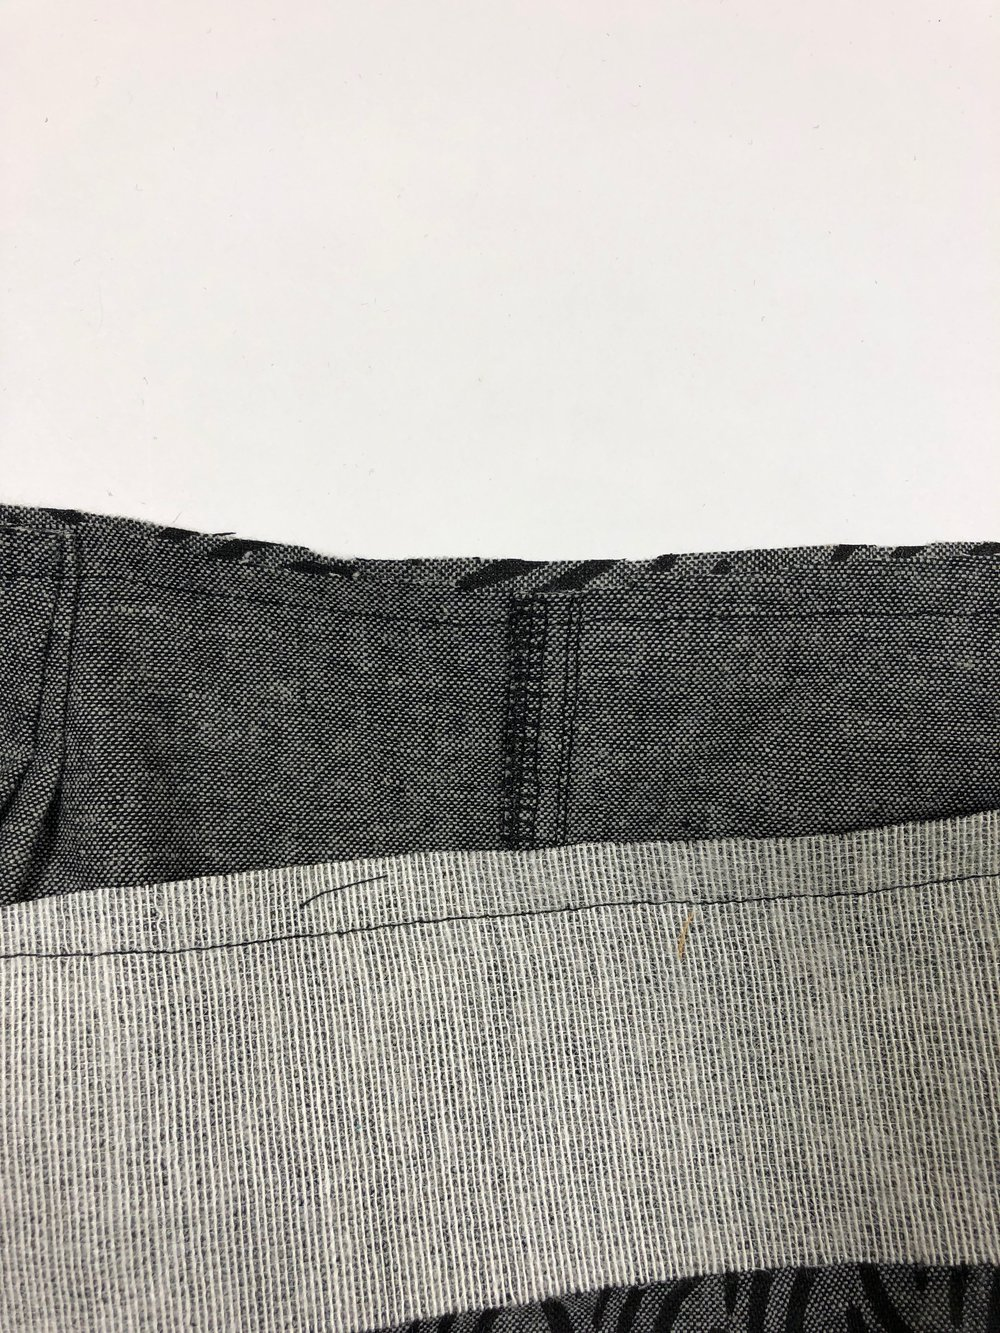 "3. Trim seam allowance to 3/8"", and grade the pants seam allowance to 1/4""."